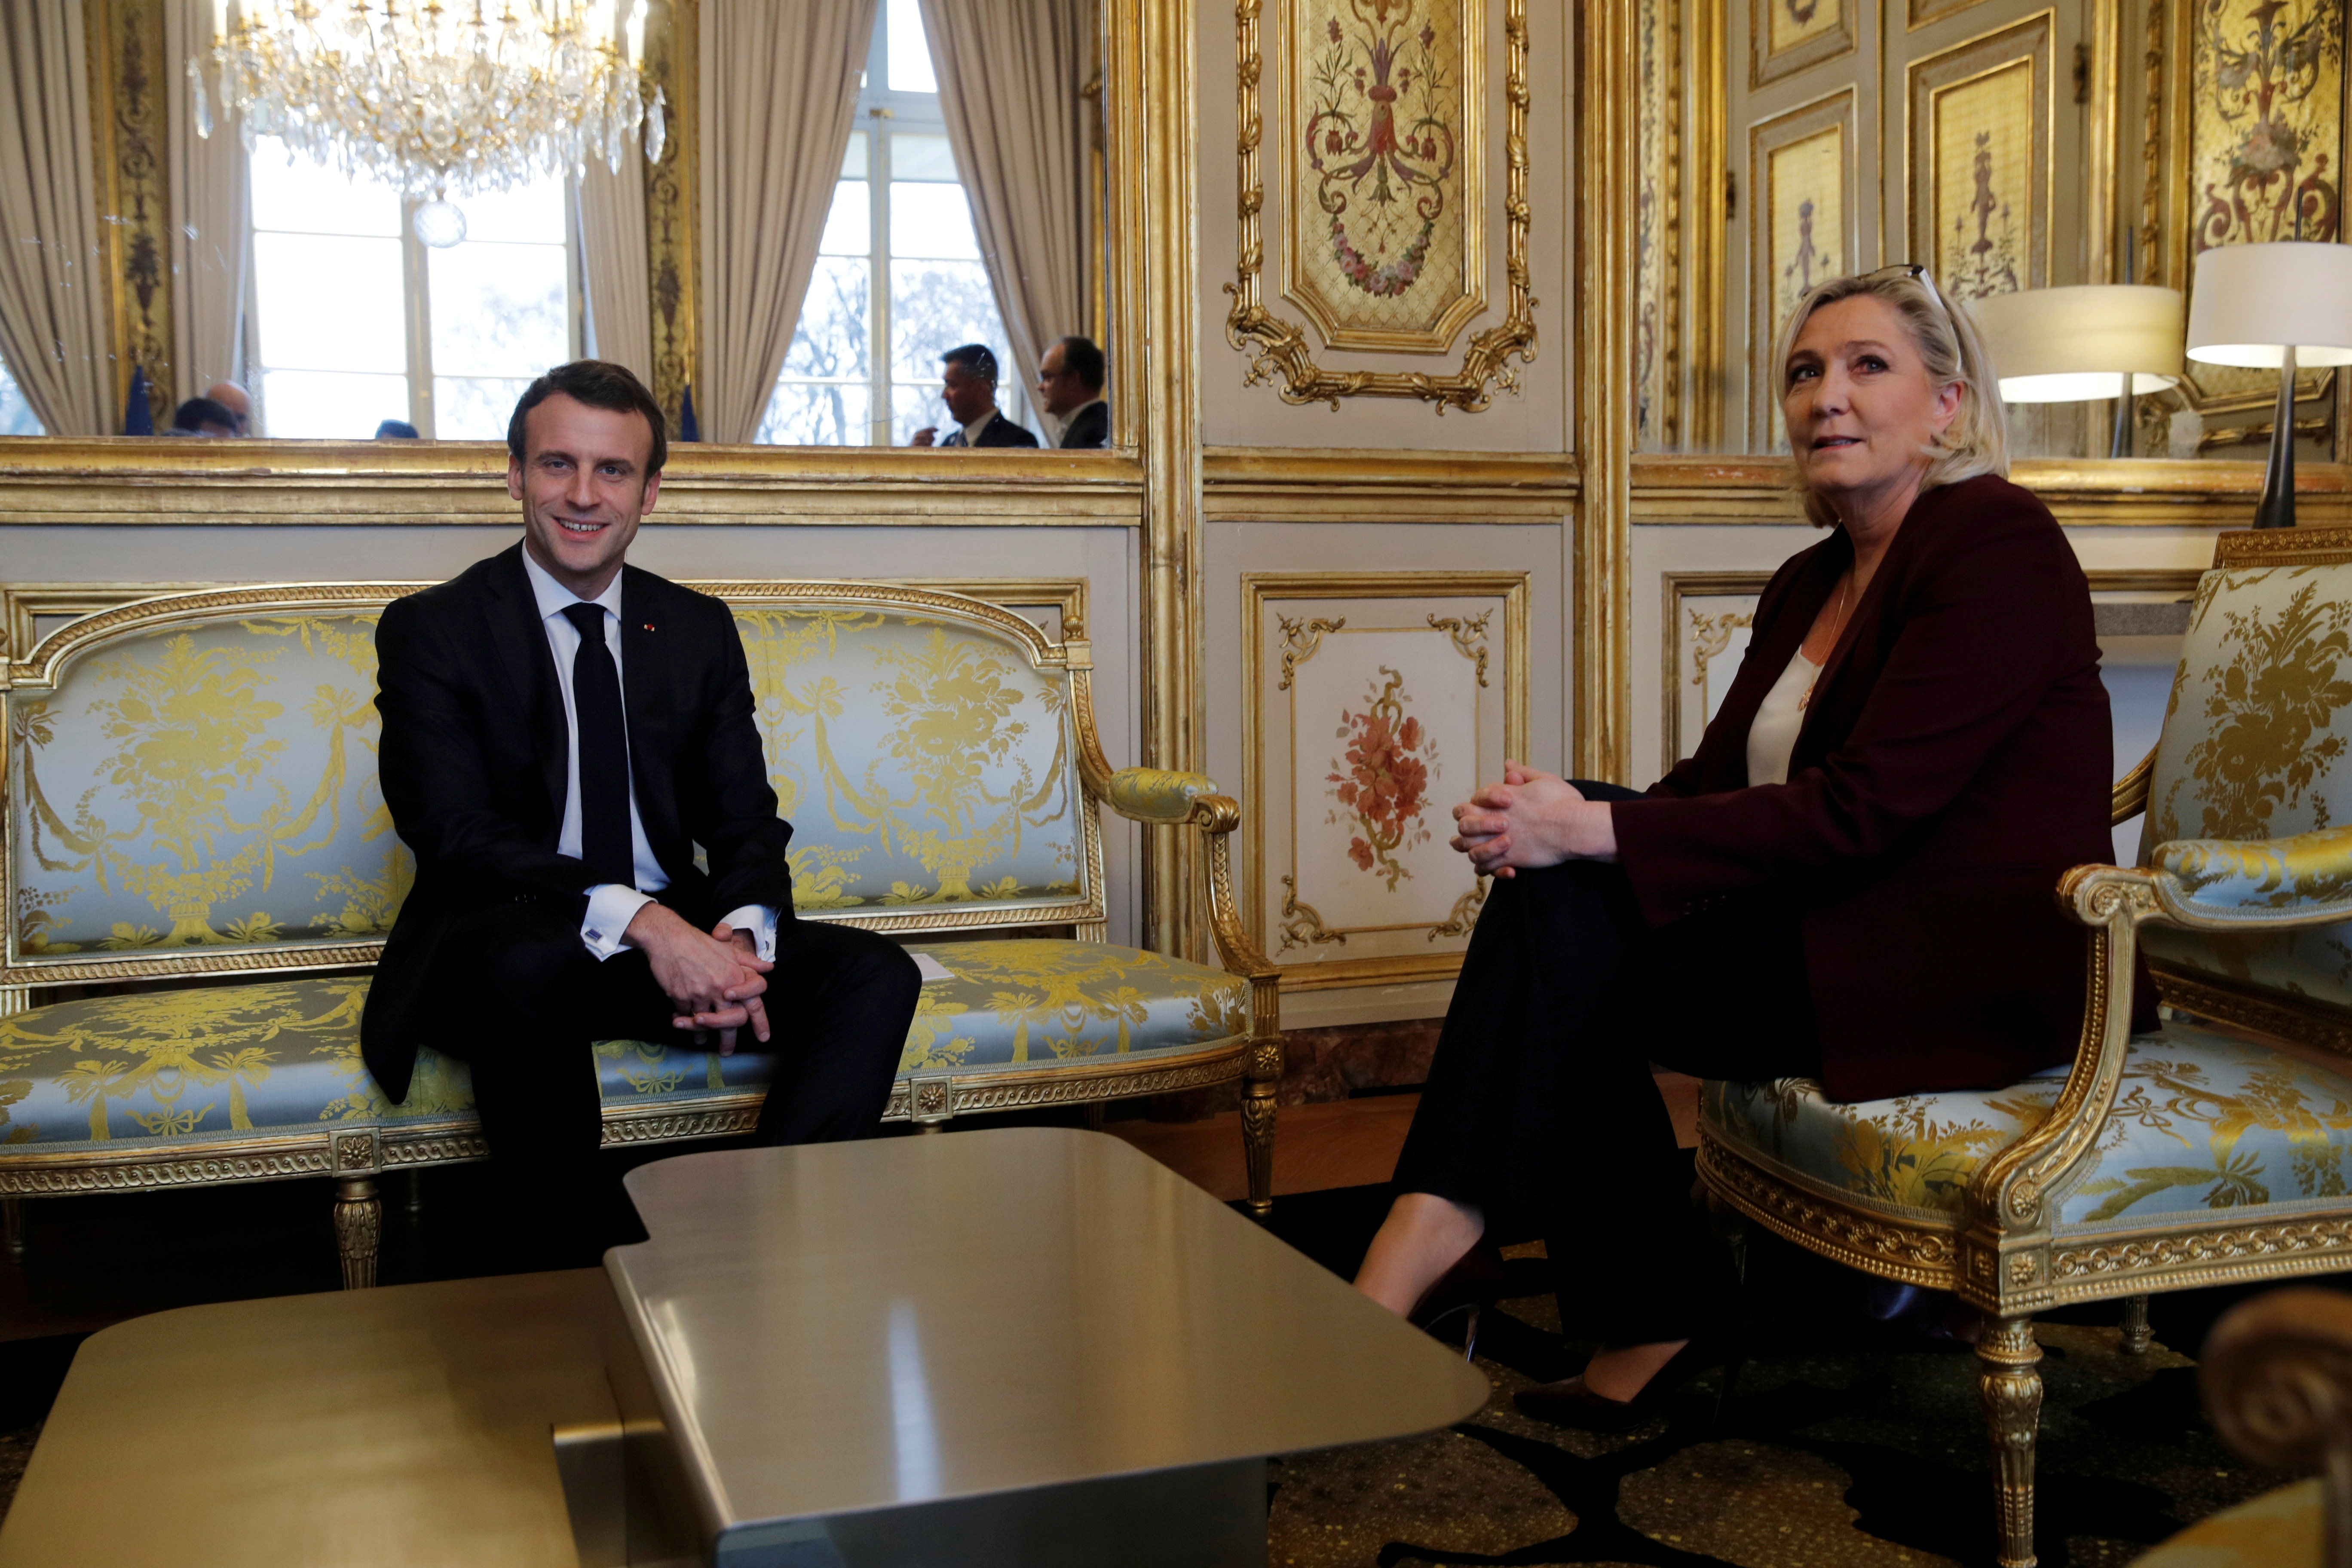 French President Emmanuel Macron attends a meeting with French far-right National Rally (Rassemblement National) party leader Marine Le Pen at the Elysee Palace in Paris, France, February 6, 2019. REUTERS/Philippe Wojazer/Pool